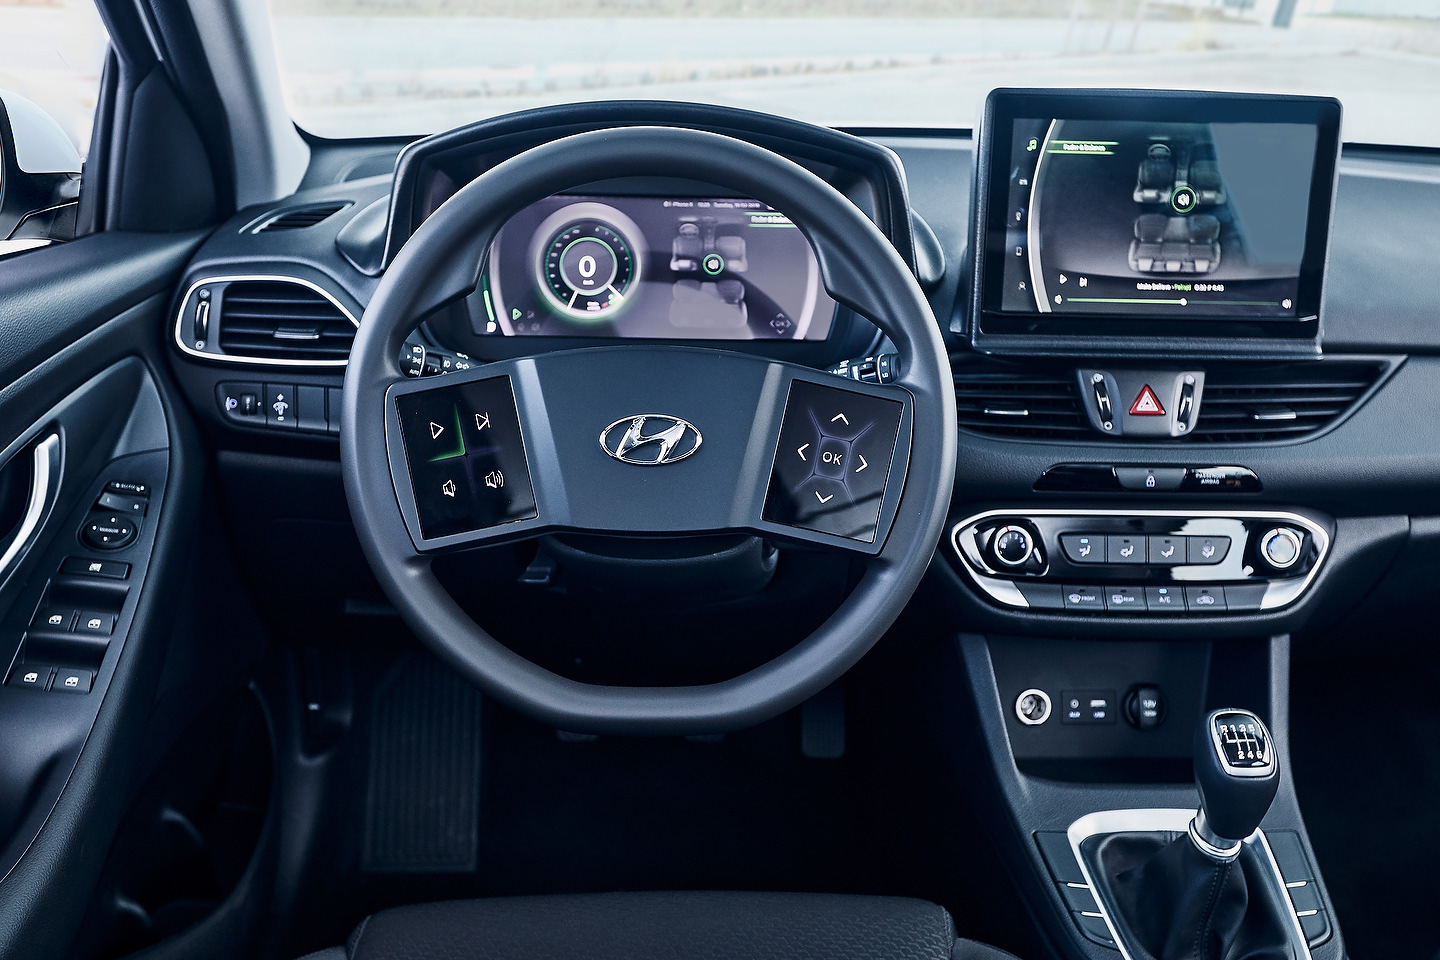 Hyundai's Virtual Cockpit